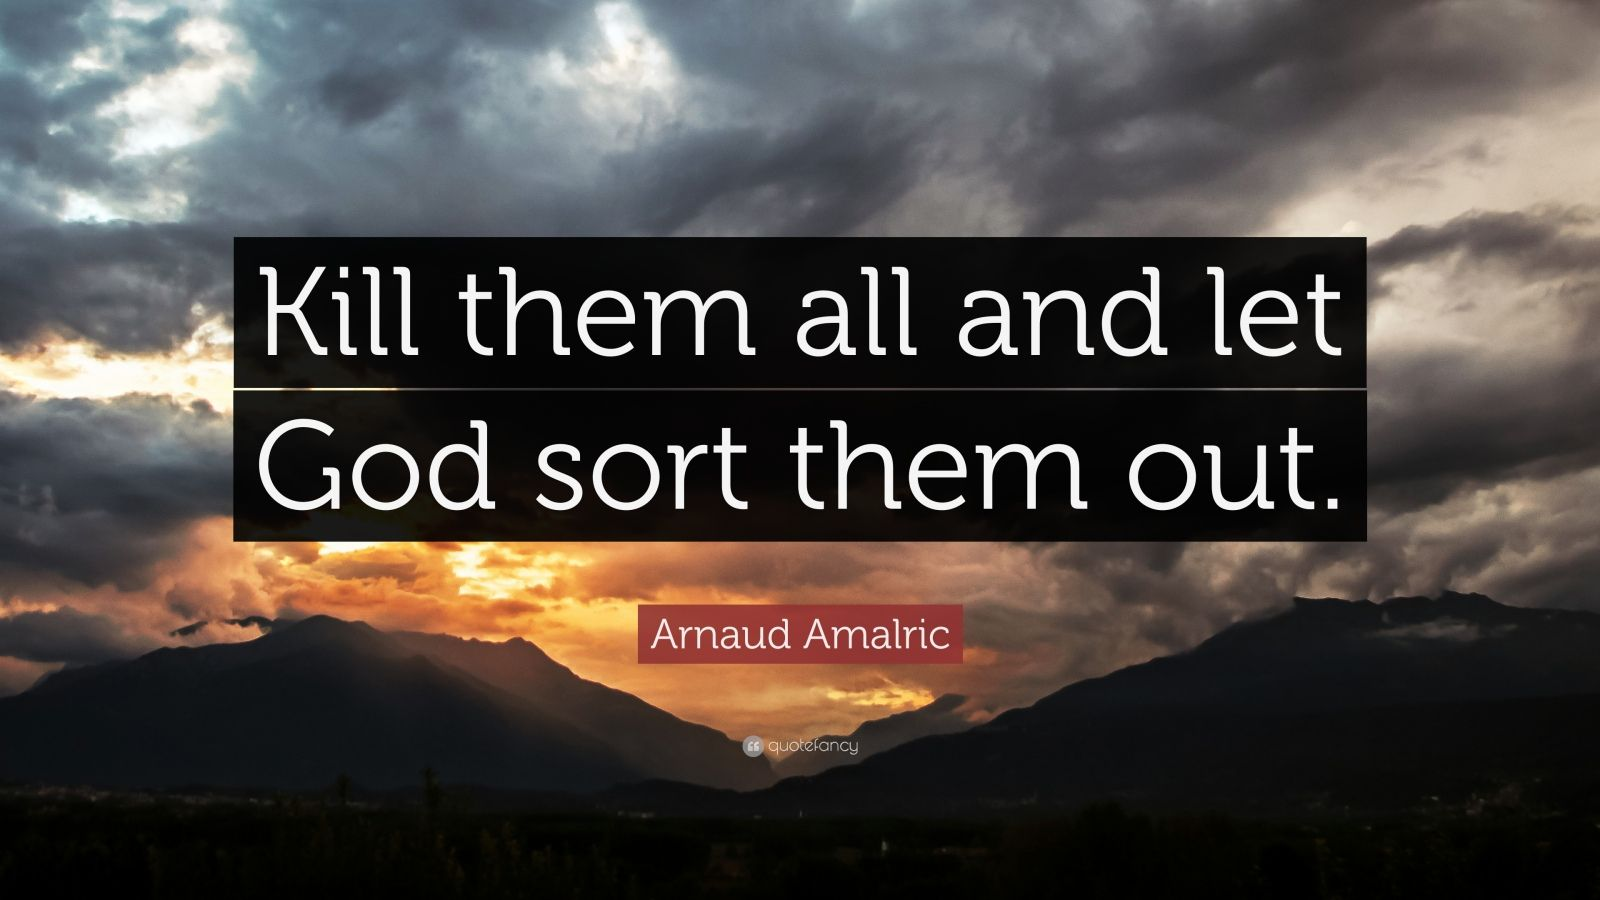 1782048-Arnaud-Amalric-Quote-Kill-them-all-and-let-God-sort-them-out.jpg